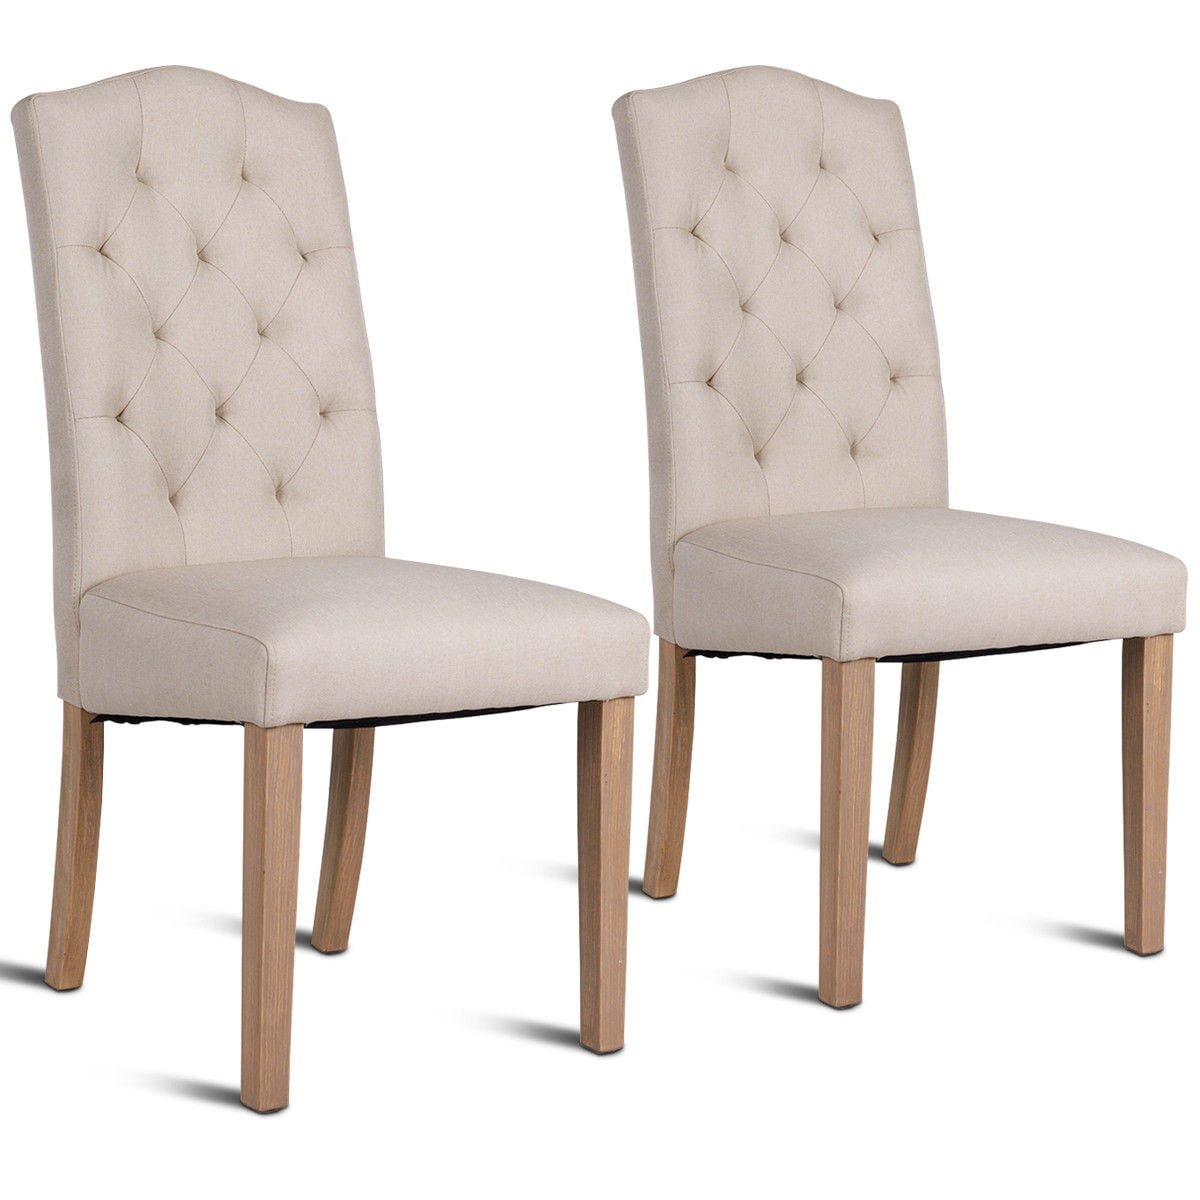 Upholstery For Dining Room Chairs: Costway Set Of 2 Dining Chair Fabric Upholstered With